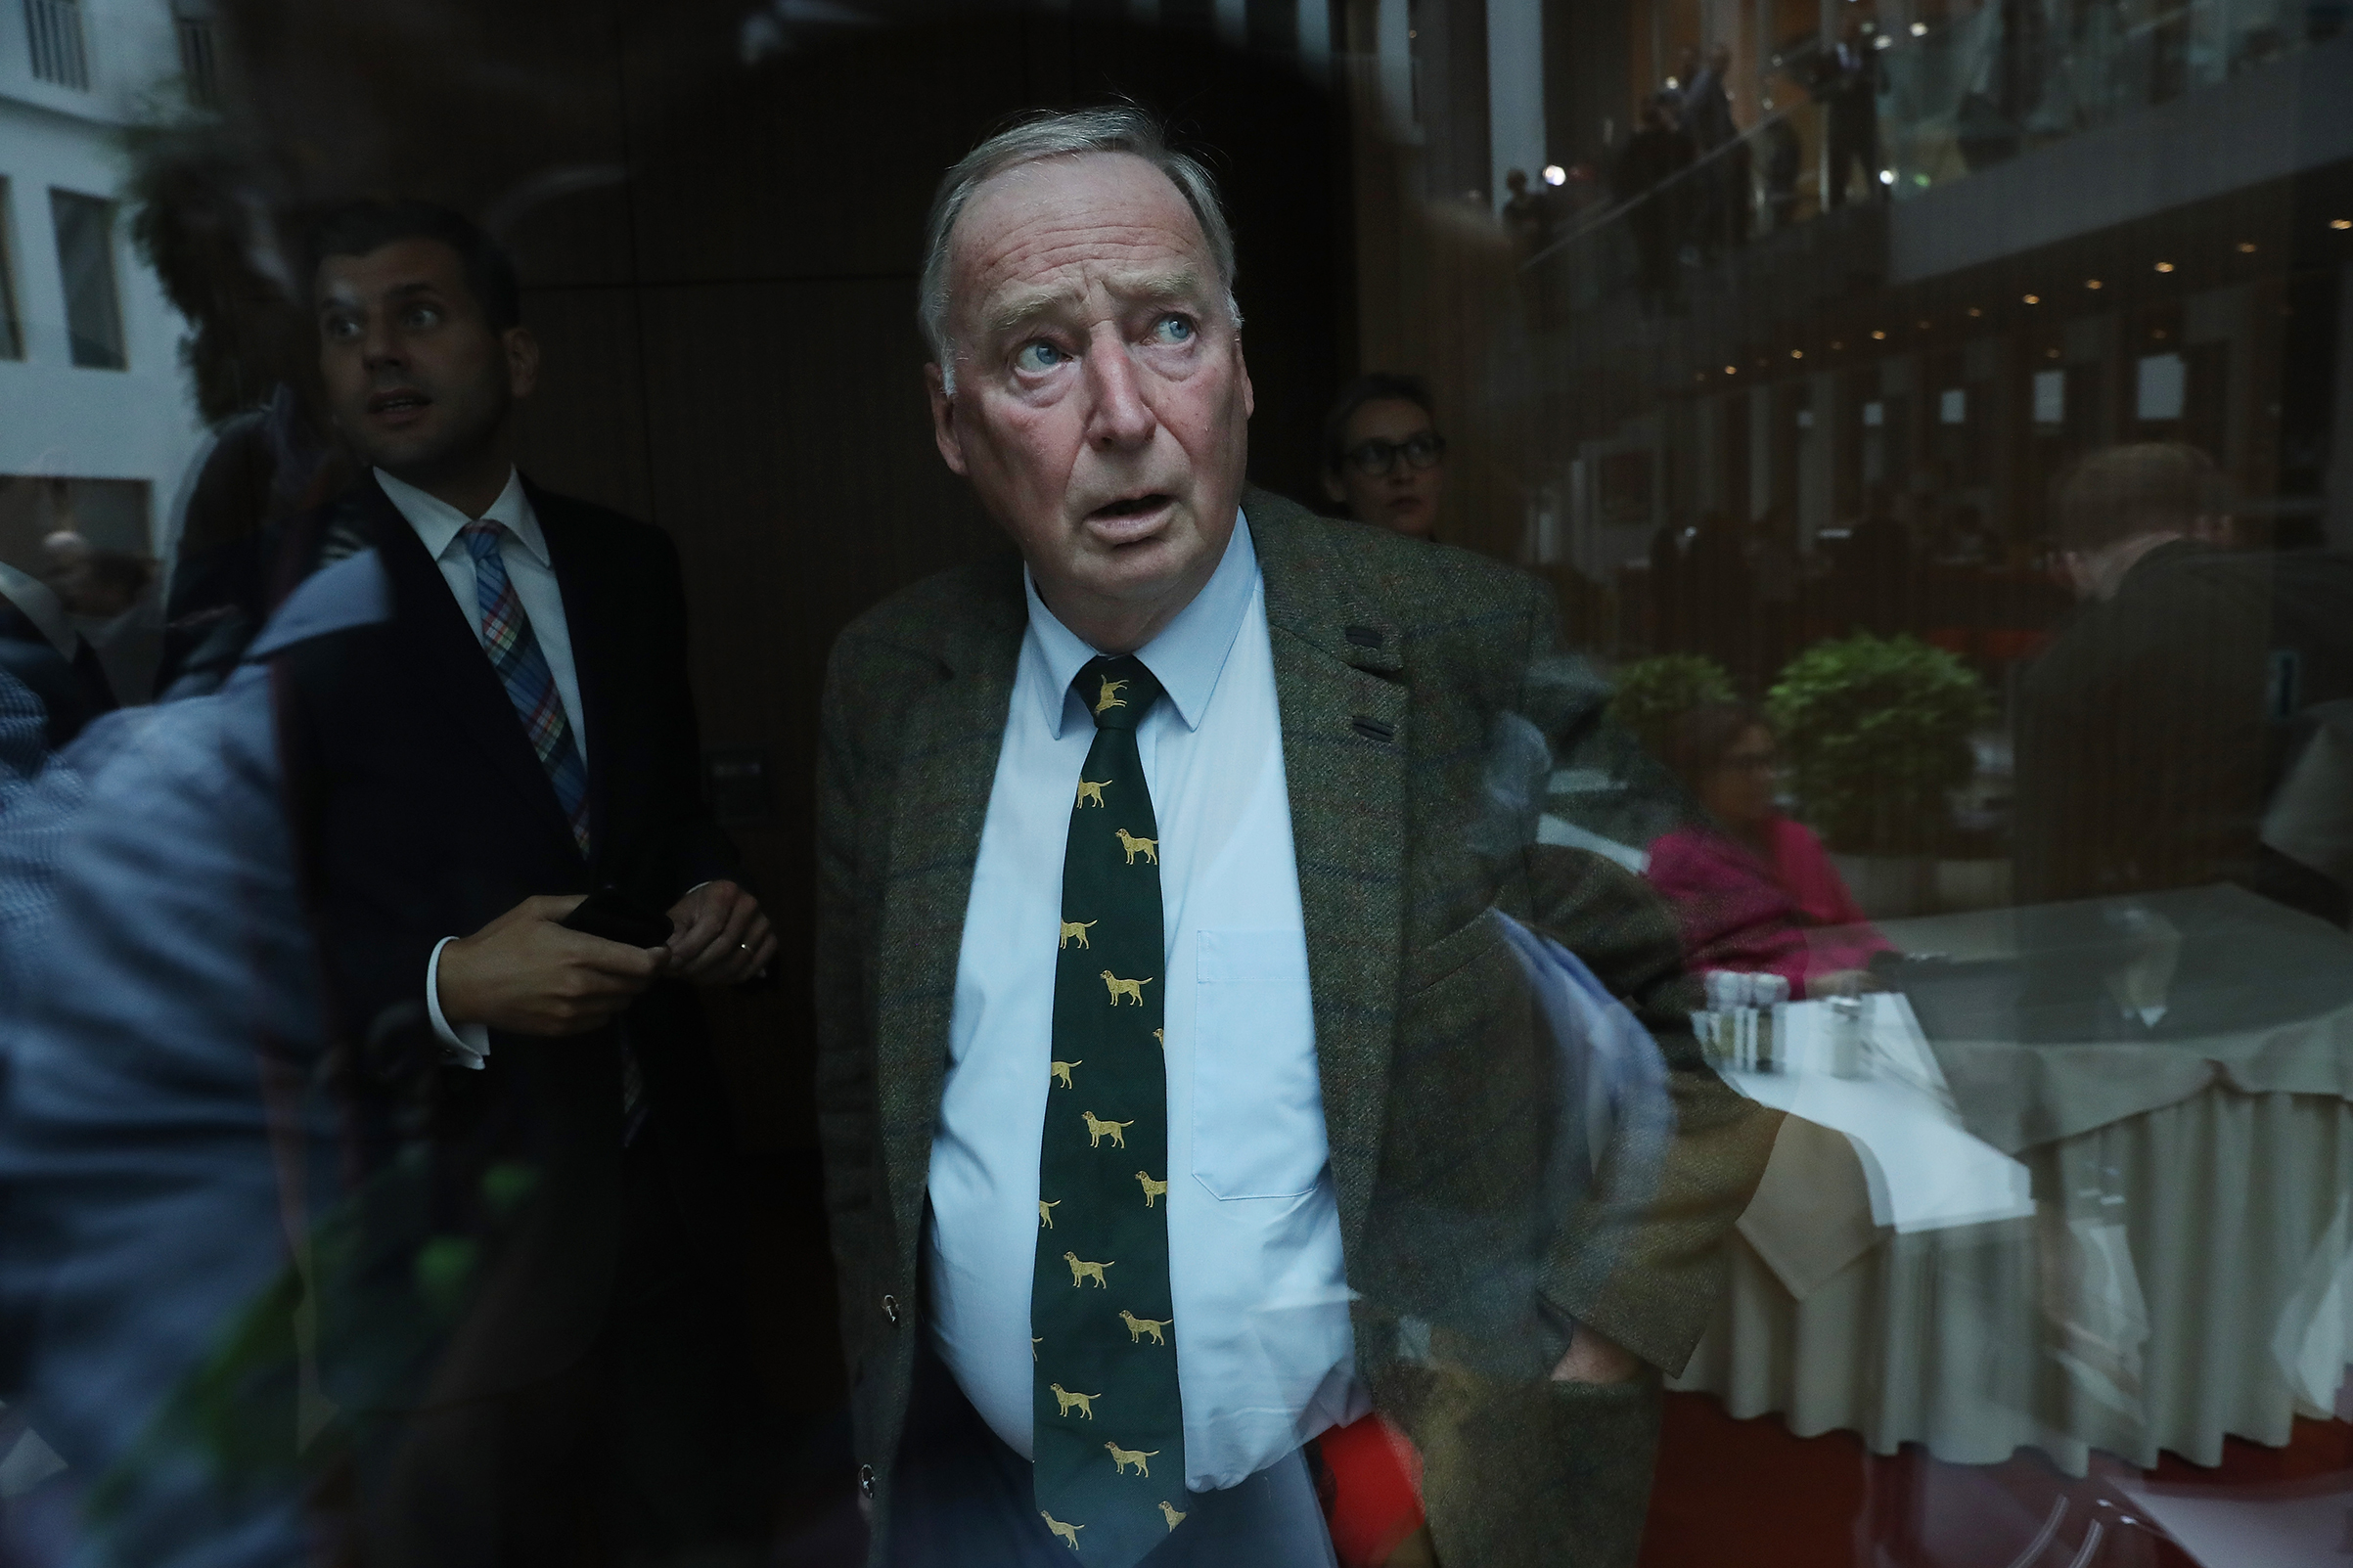 Alexander Gauland, who was a co-lead candidate of the right-wing Alternative for Germany (AfD) party in the German federal elections, is seen through glass following a news conference in Berlin on Sept. 25, 2017. At the conference, AfD member Frauke Petry announced she would quit the party in a surprise move.